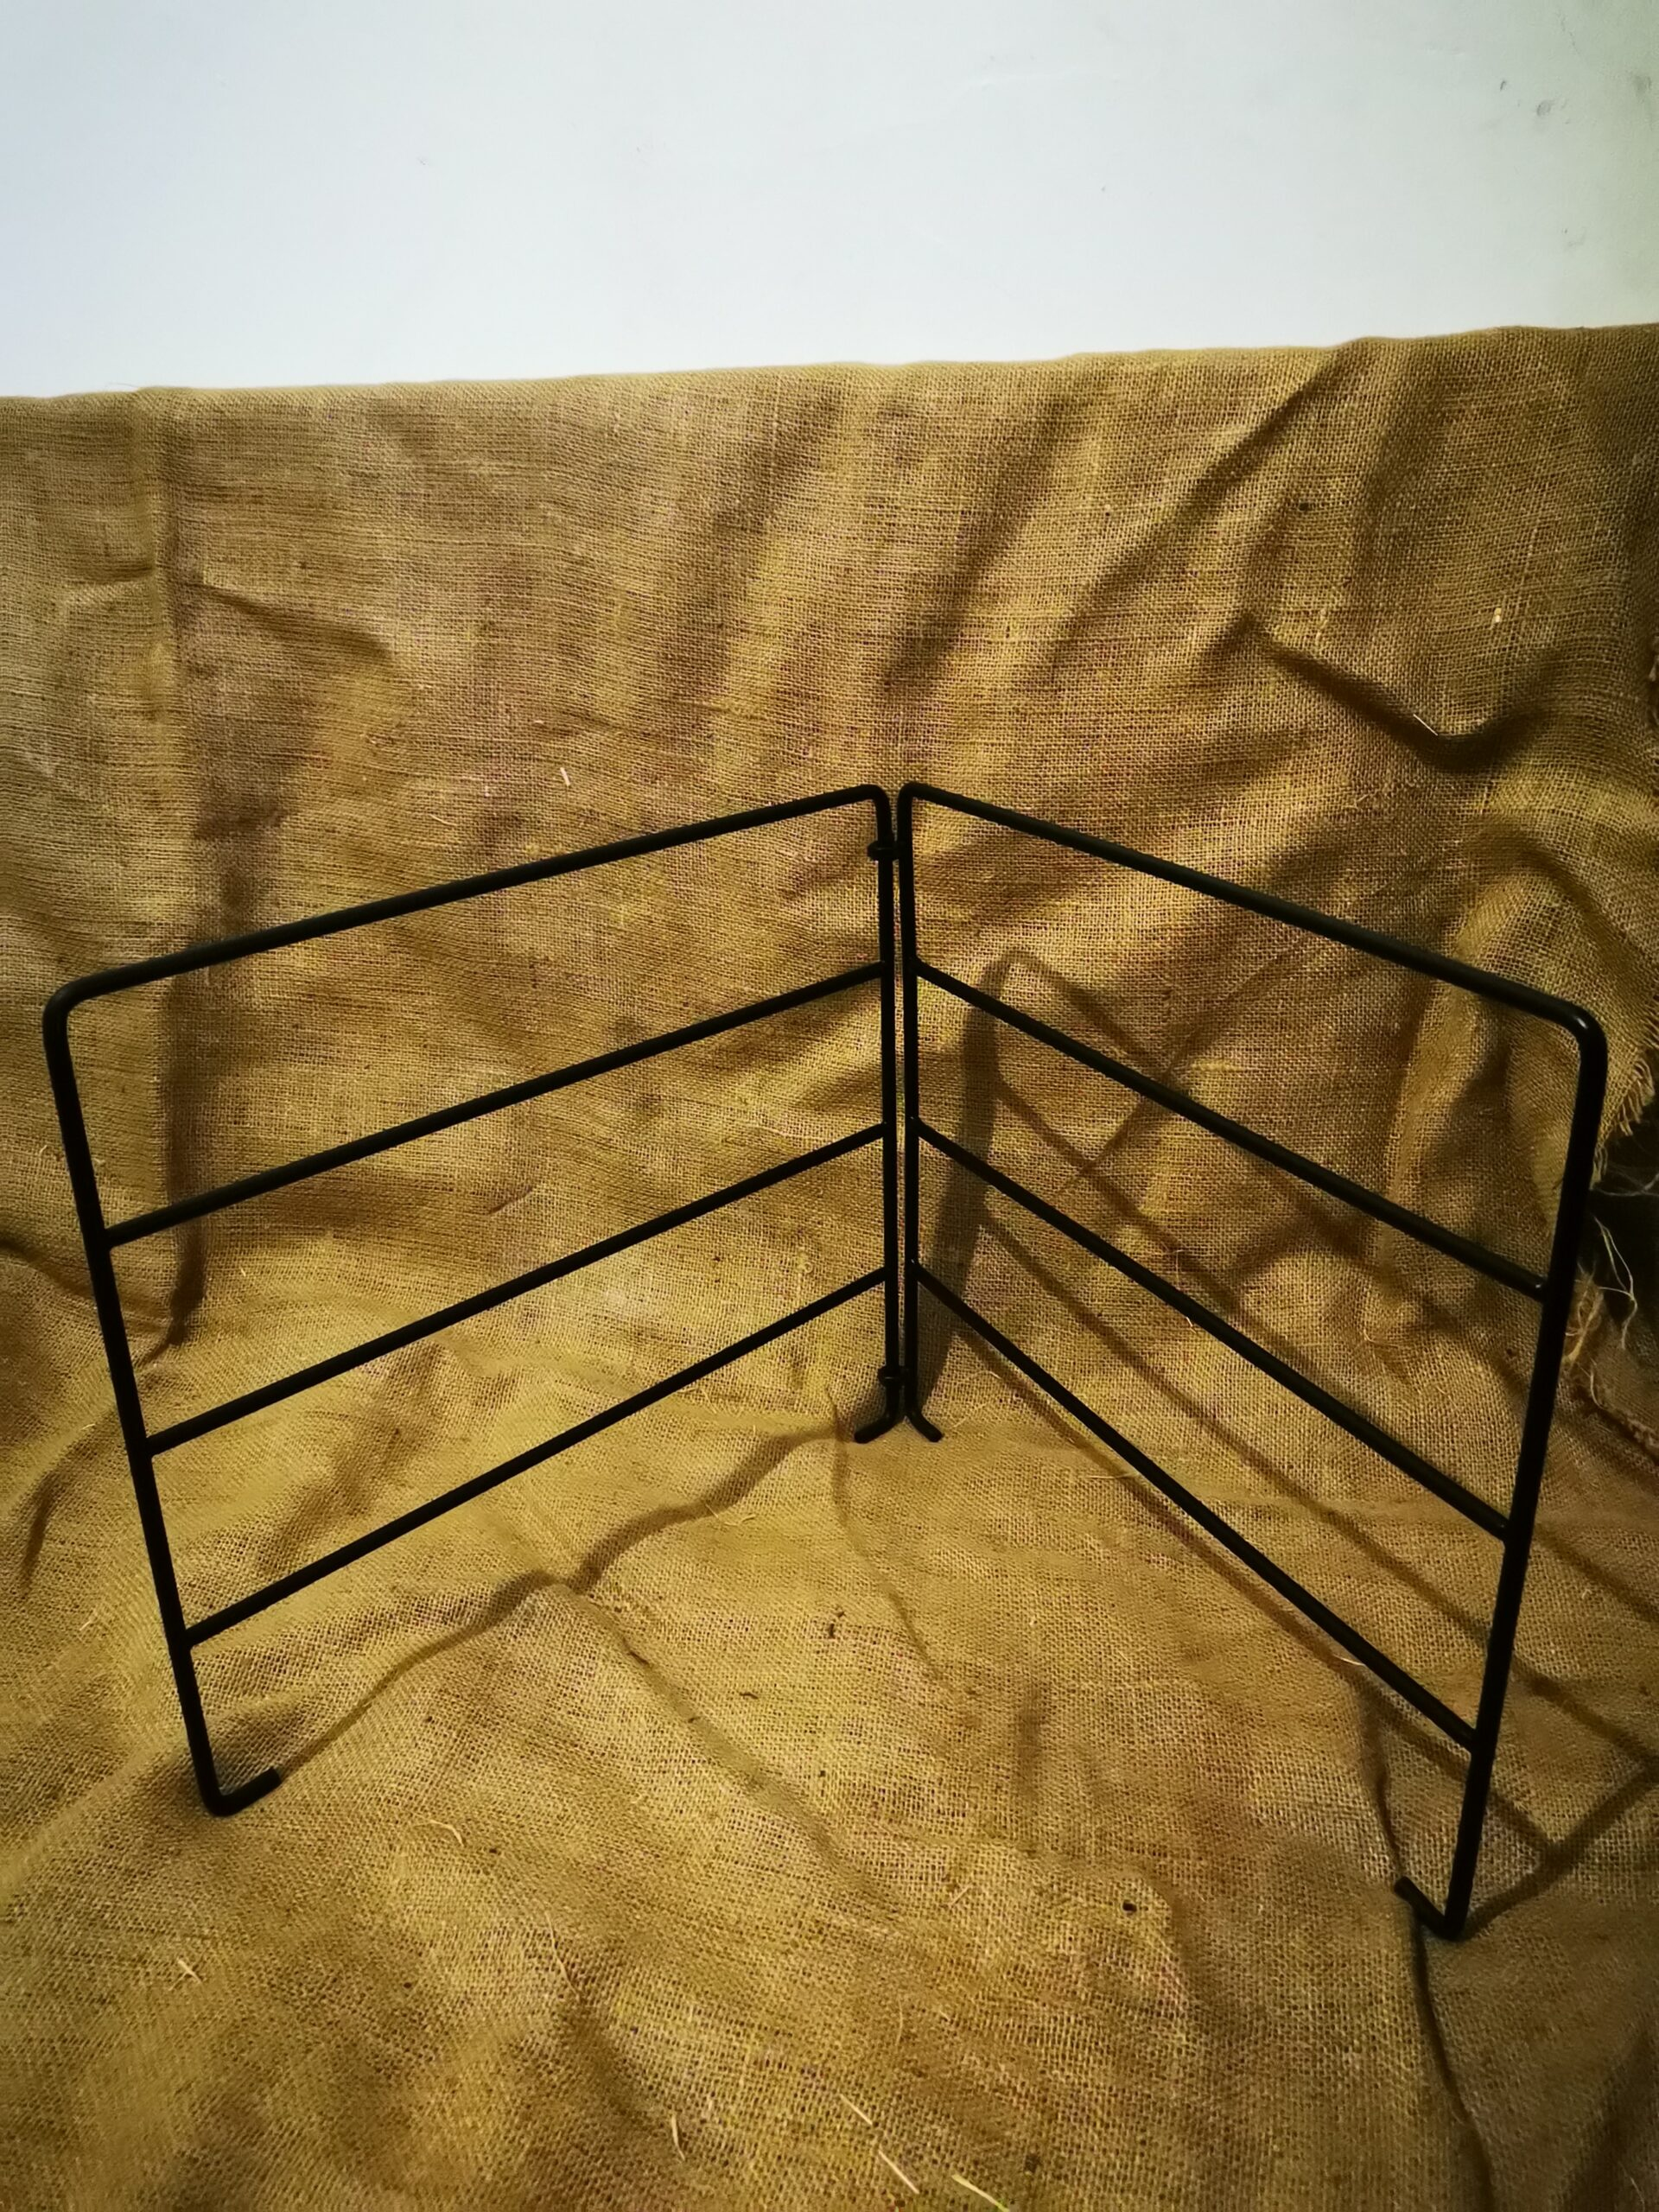 mild-steel-fold-up-stand2